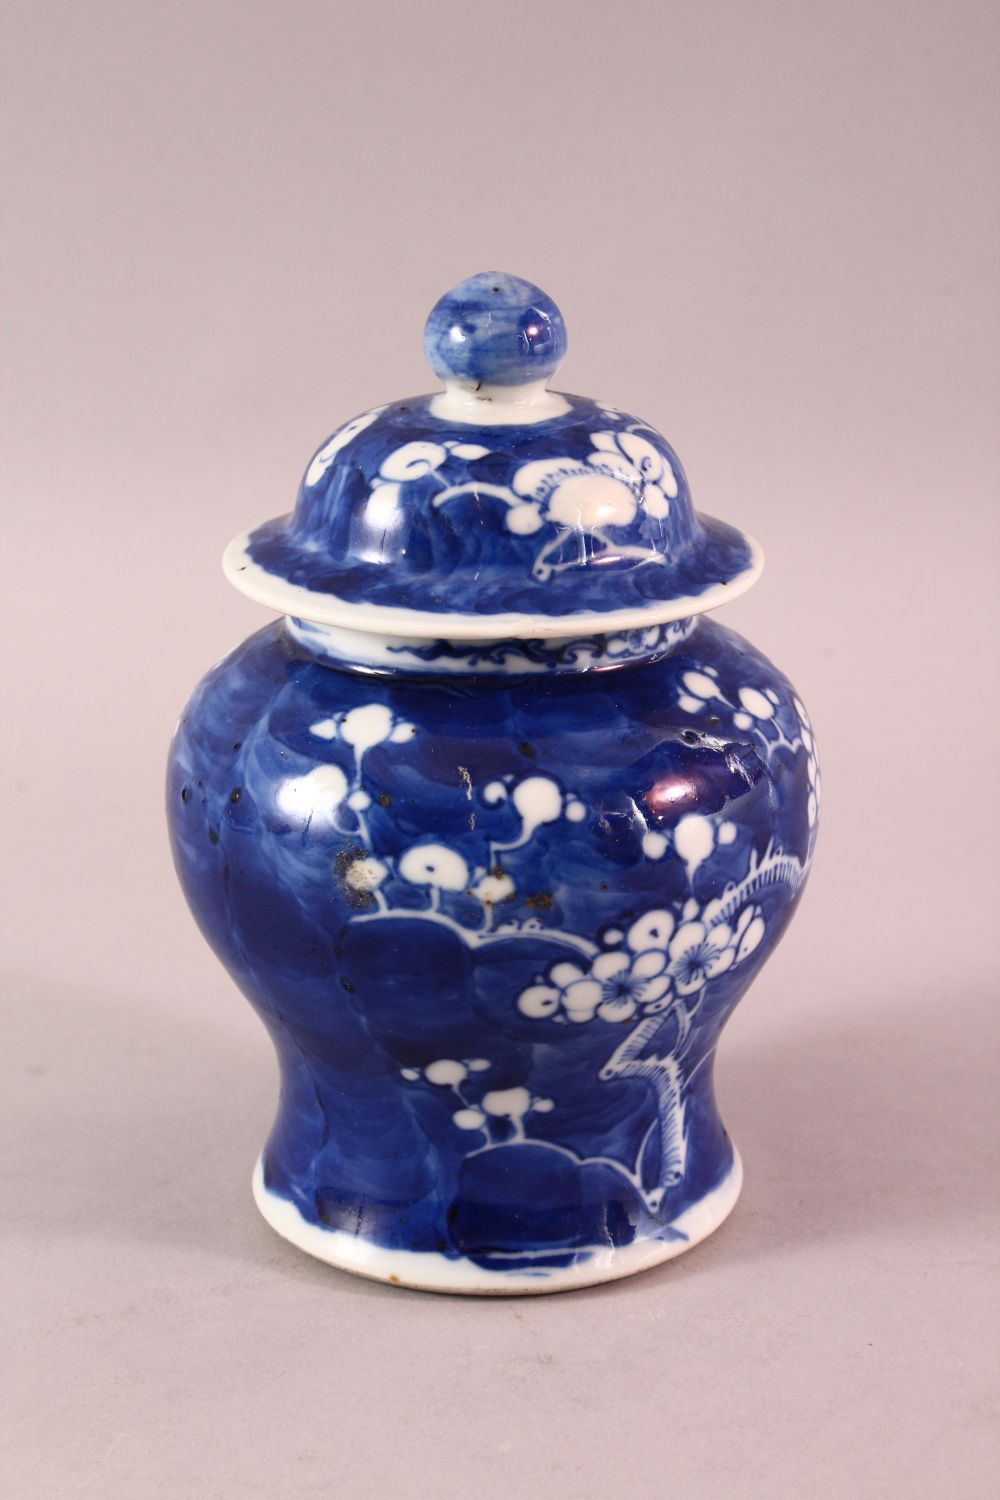 A 19TH / 20TH CENTURY CHINESE BLUE & WHITE PORCELAIN PRUNUS JAR & COVER, with prunus decoration, - Image 3 of 6